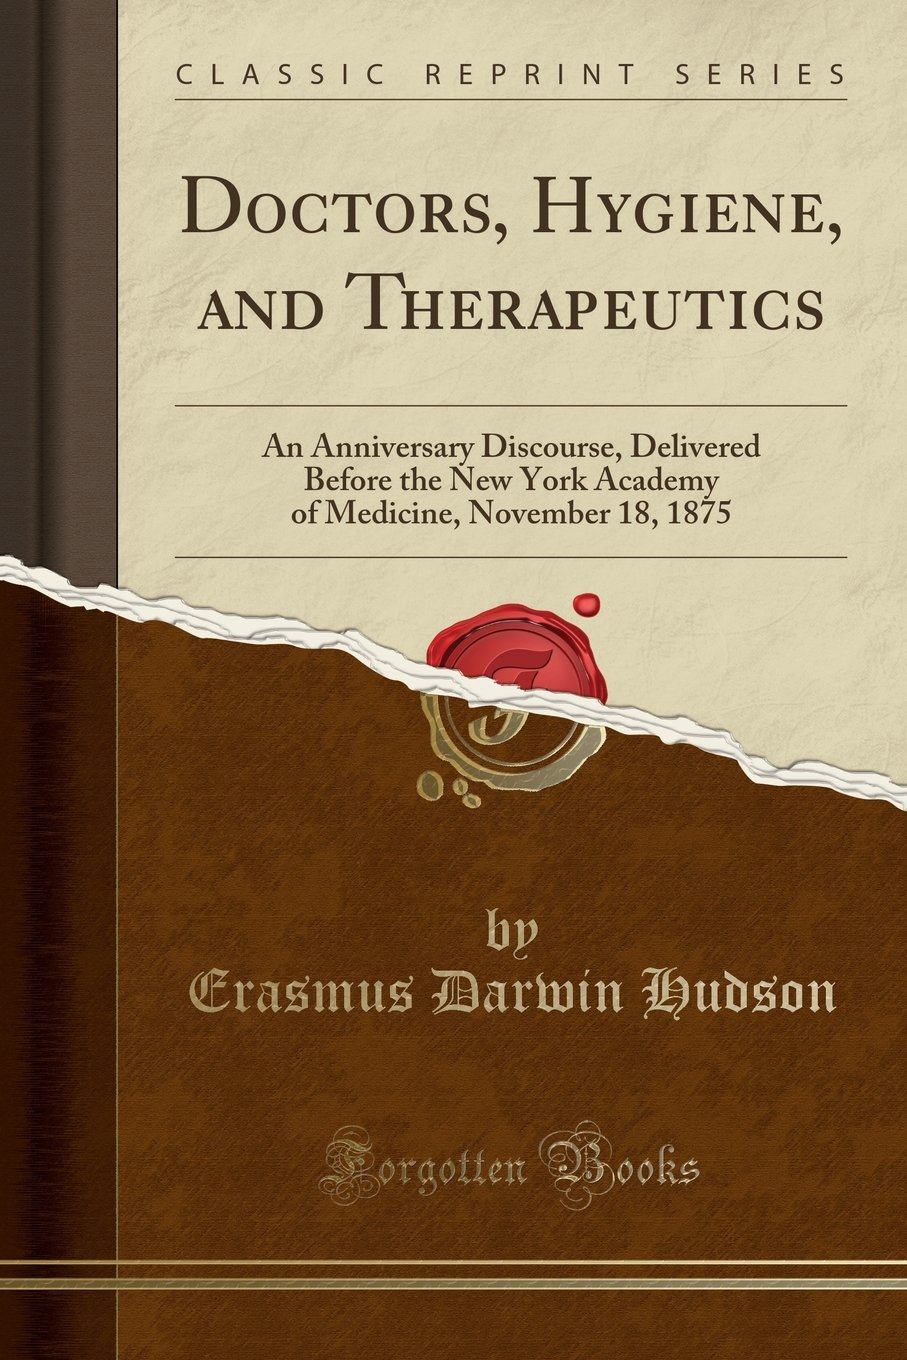 Doctors, Hygiene, and Therapeutics: An Anniversary Discourse, Delivered Before the New York Academy of Medicine, November 18, 1875 (Classic Reprint) PDF